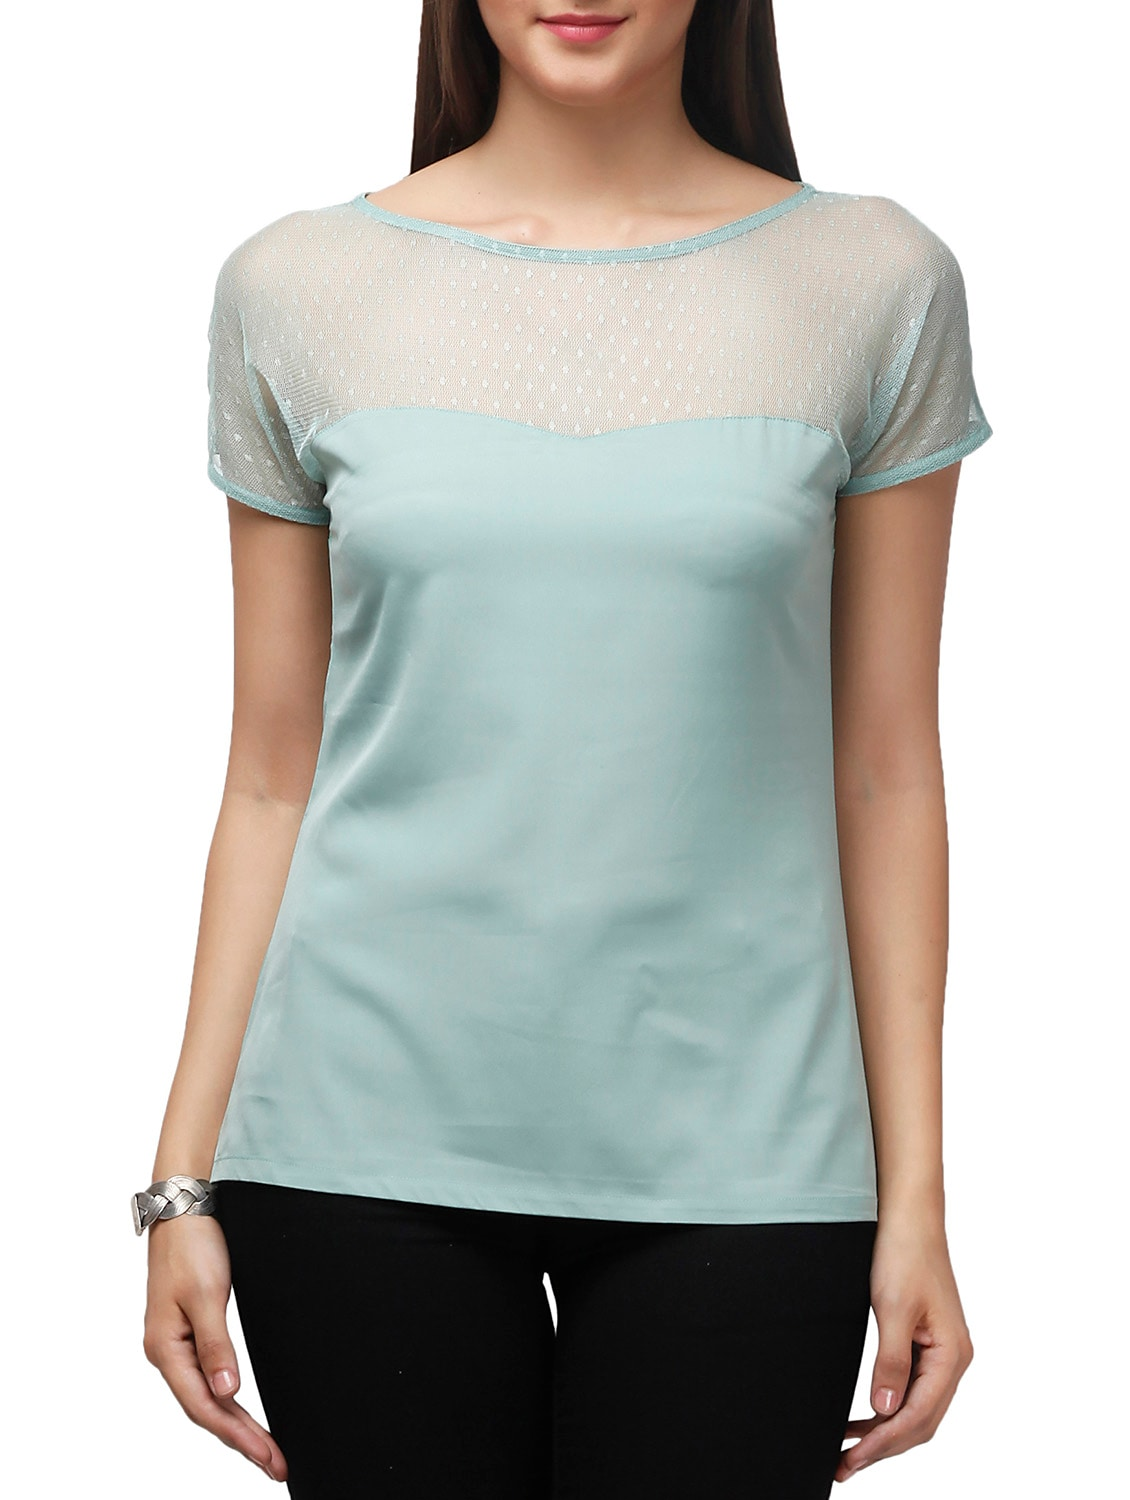 Illusion Neck Pastel Green Top 10734292 Zoom Image 1